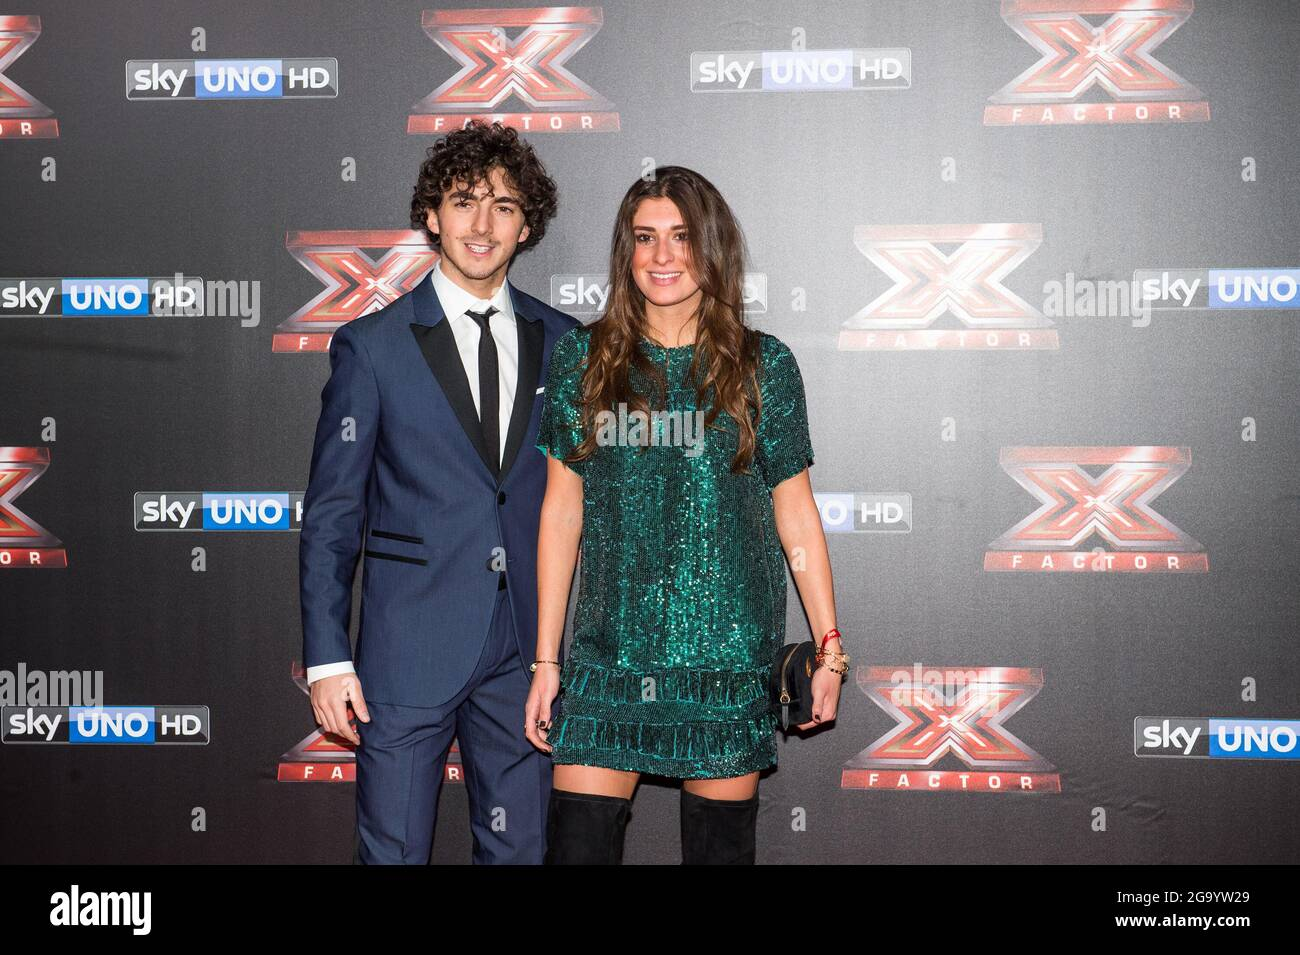 The Motorcycle Rider Francesco Bagnaia With Girlfriend At The Red Carpet For The Final Of The X Factor Television Program At The Assago Forum Assago Italy December 14th 2017 Photo By Elena